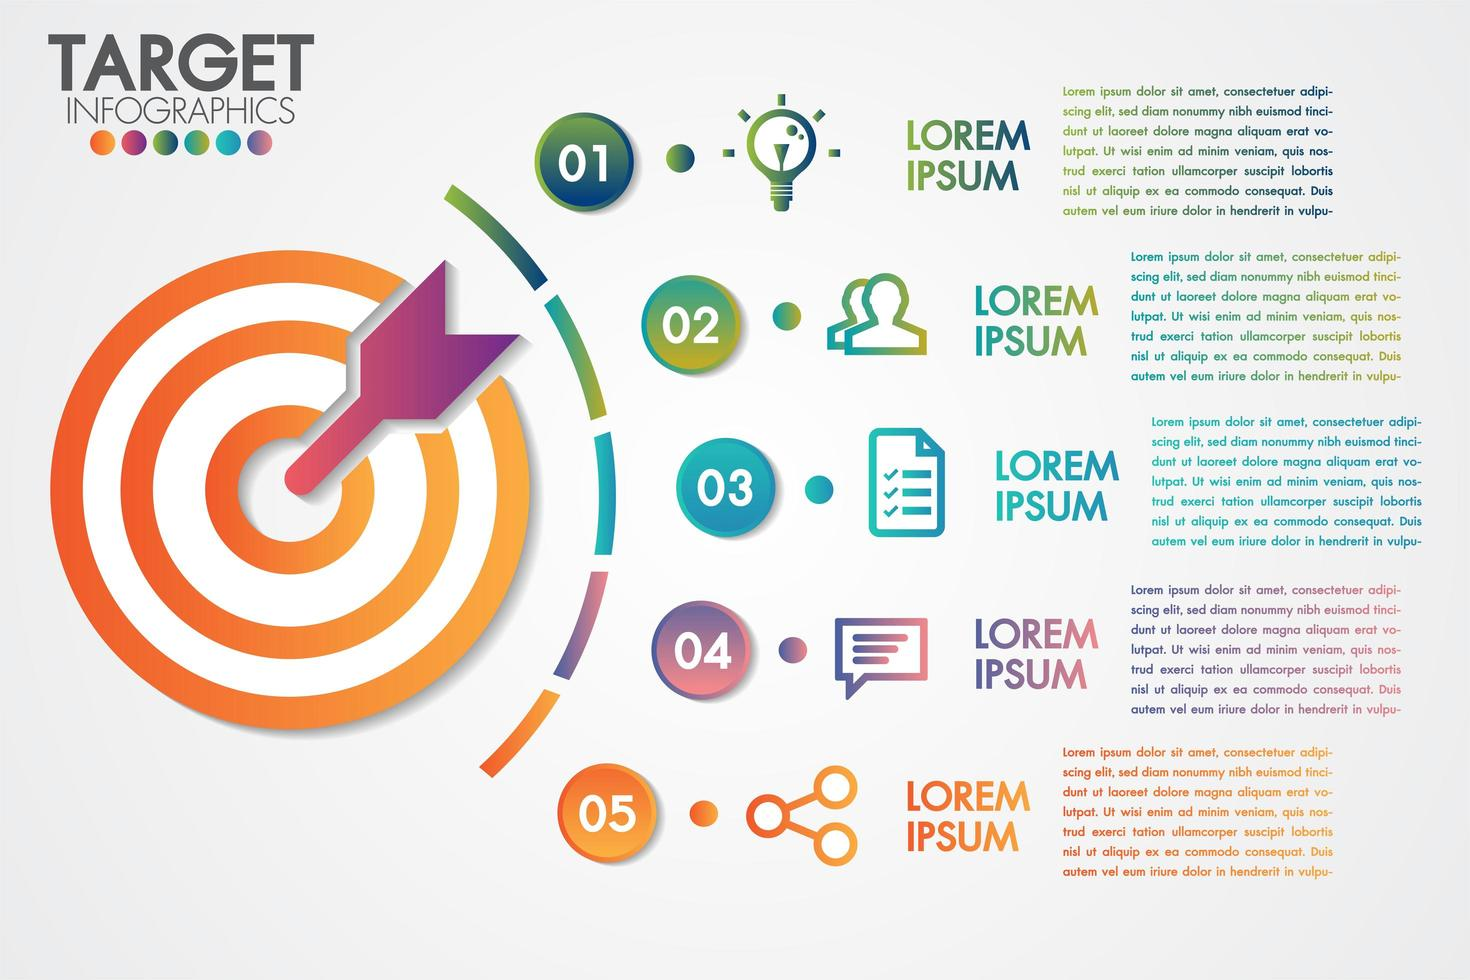 Target infographics 5 steps or options business design vector